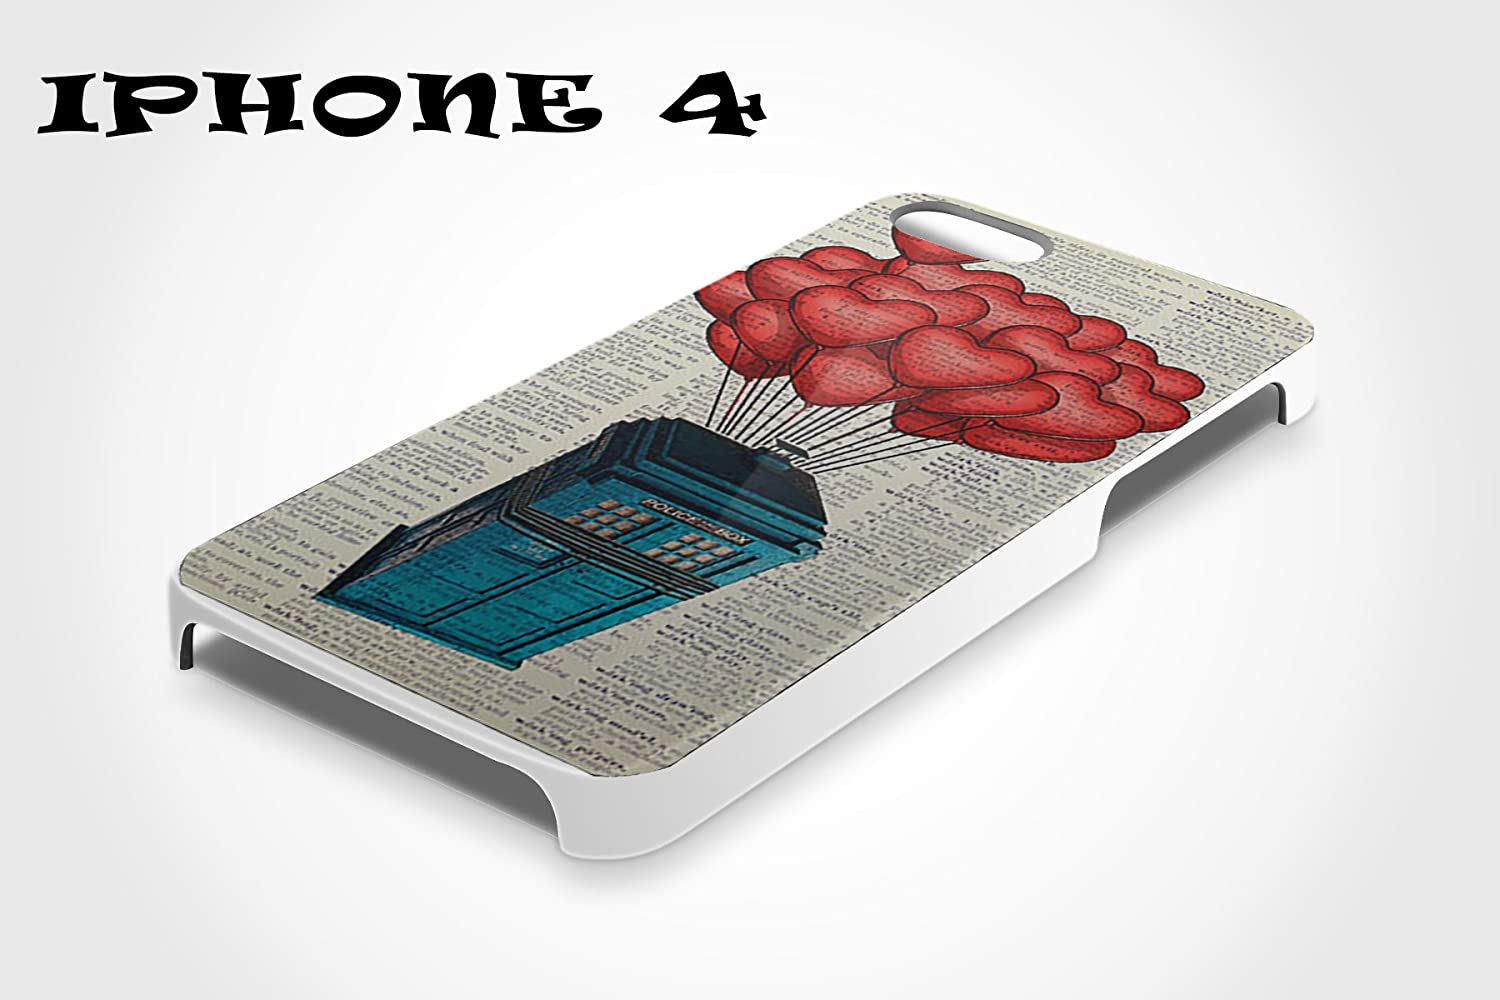 SPOCASES made to order { Doctor Who Police Box Case } - Package include 1 White Case for Apple iPhone 4 SP052